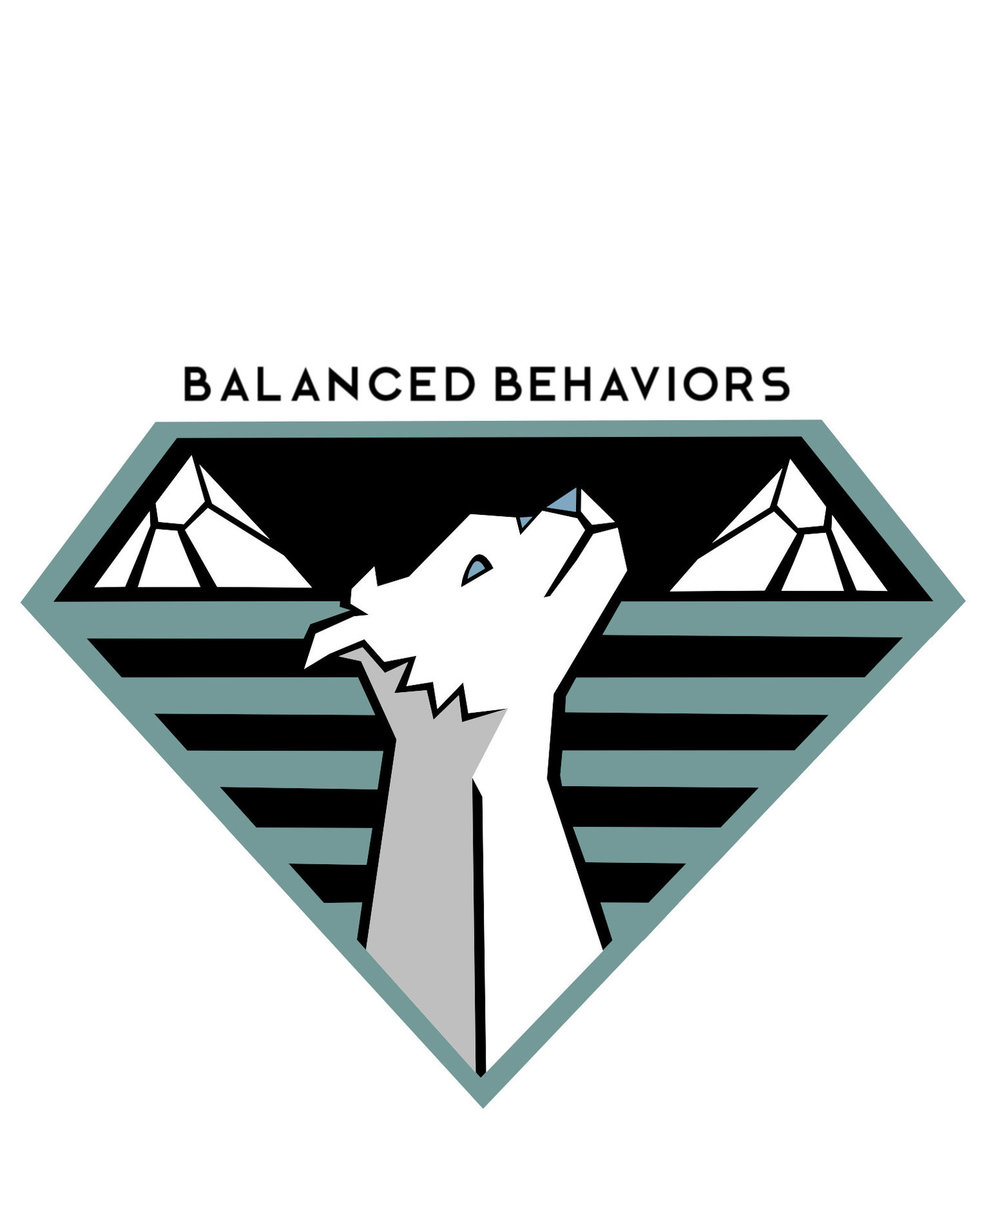 Balanced Behaviors